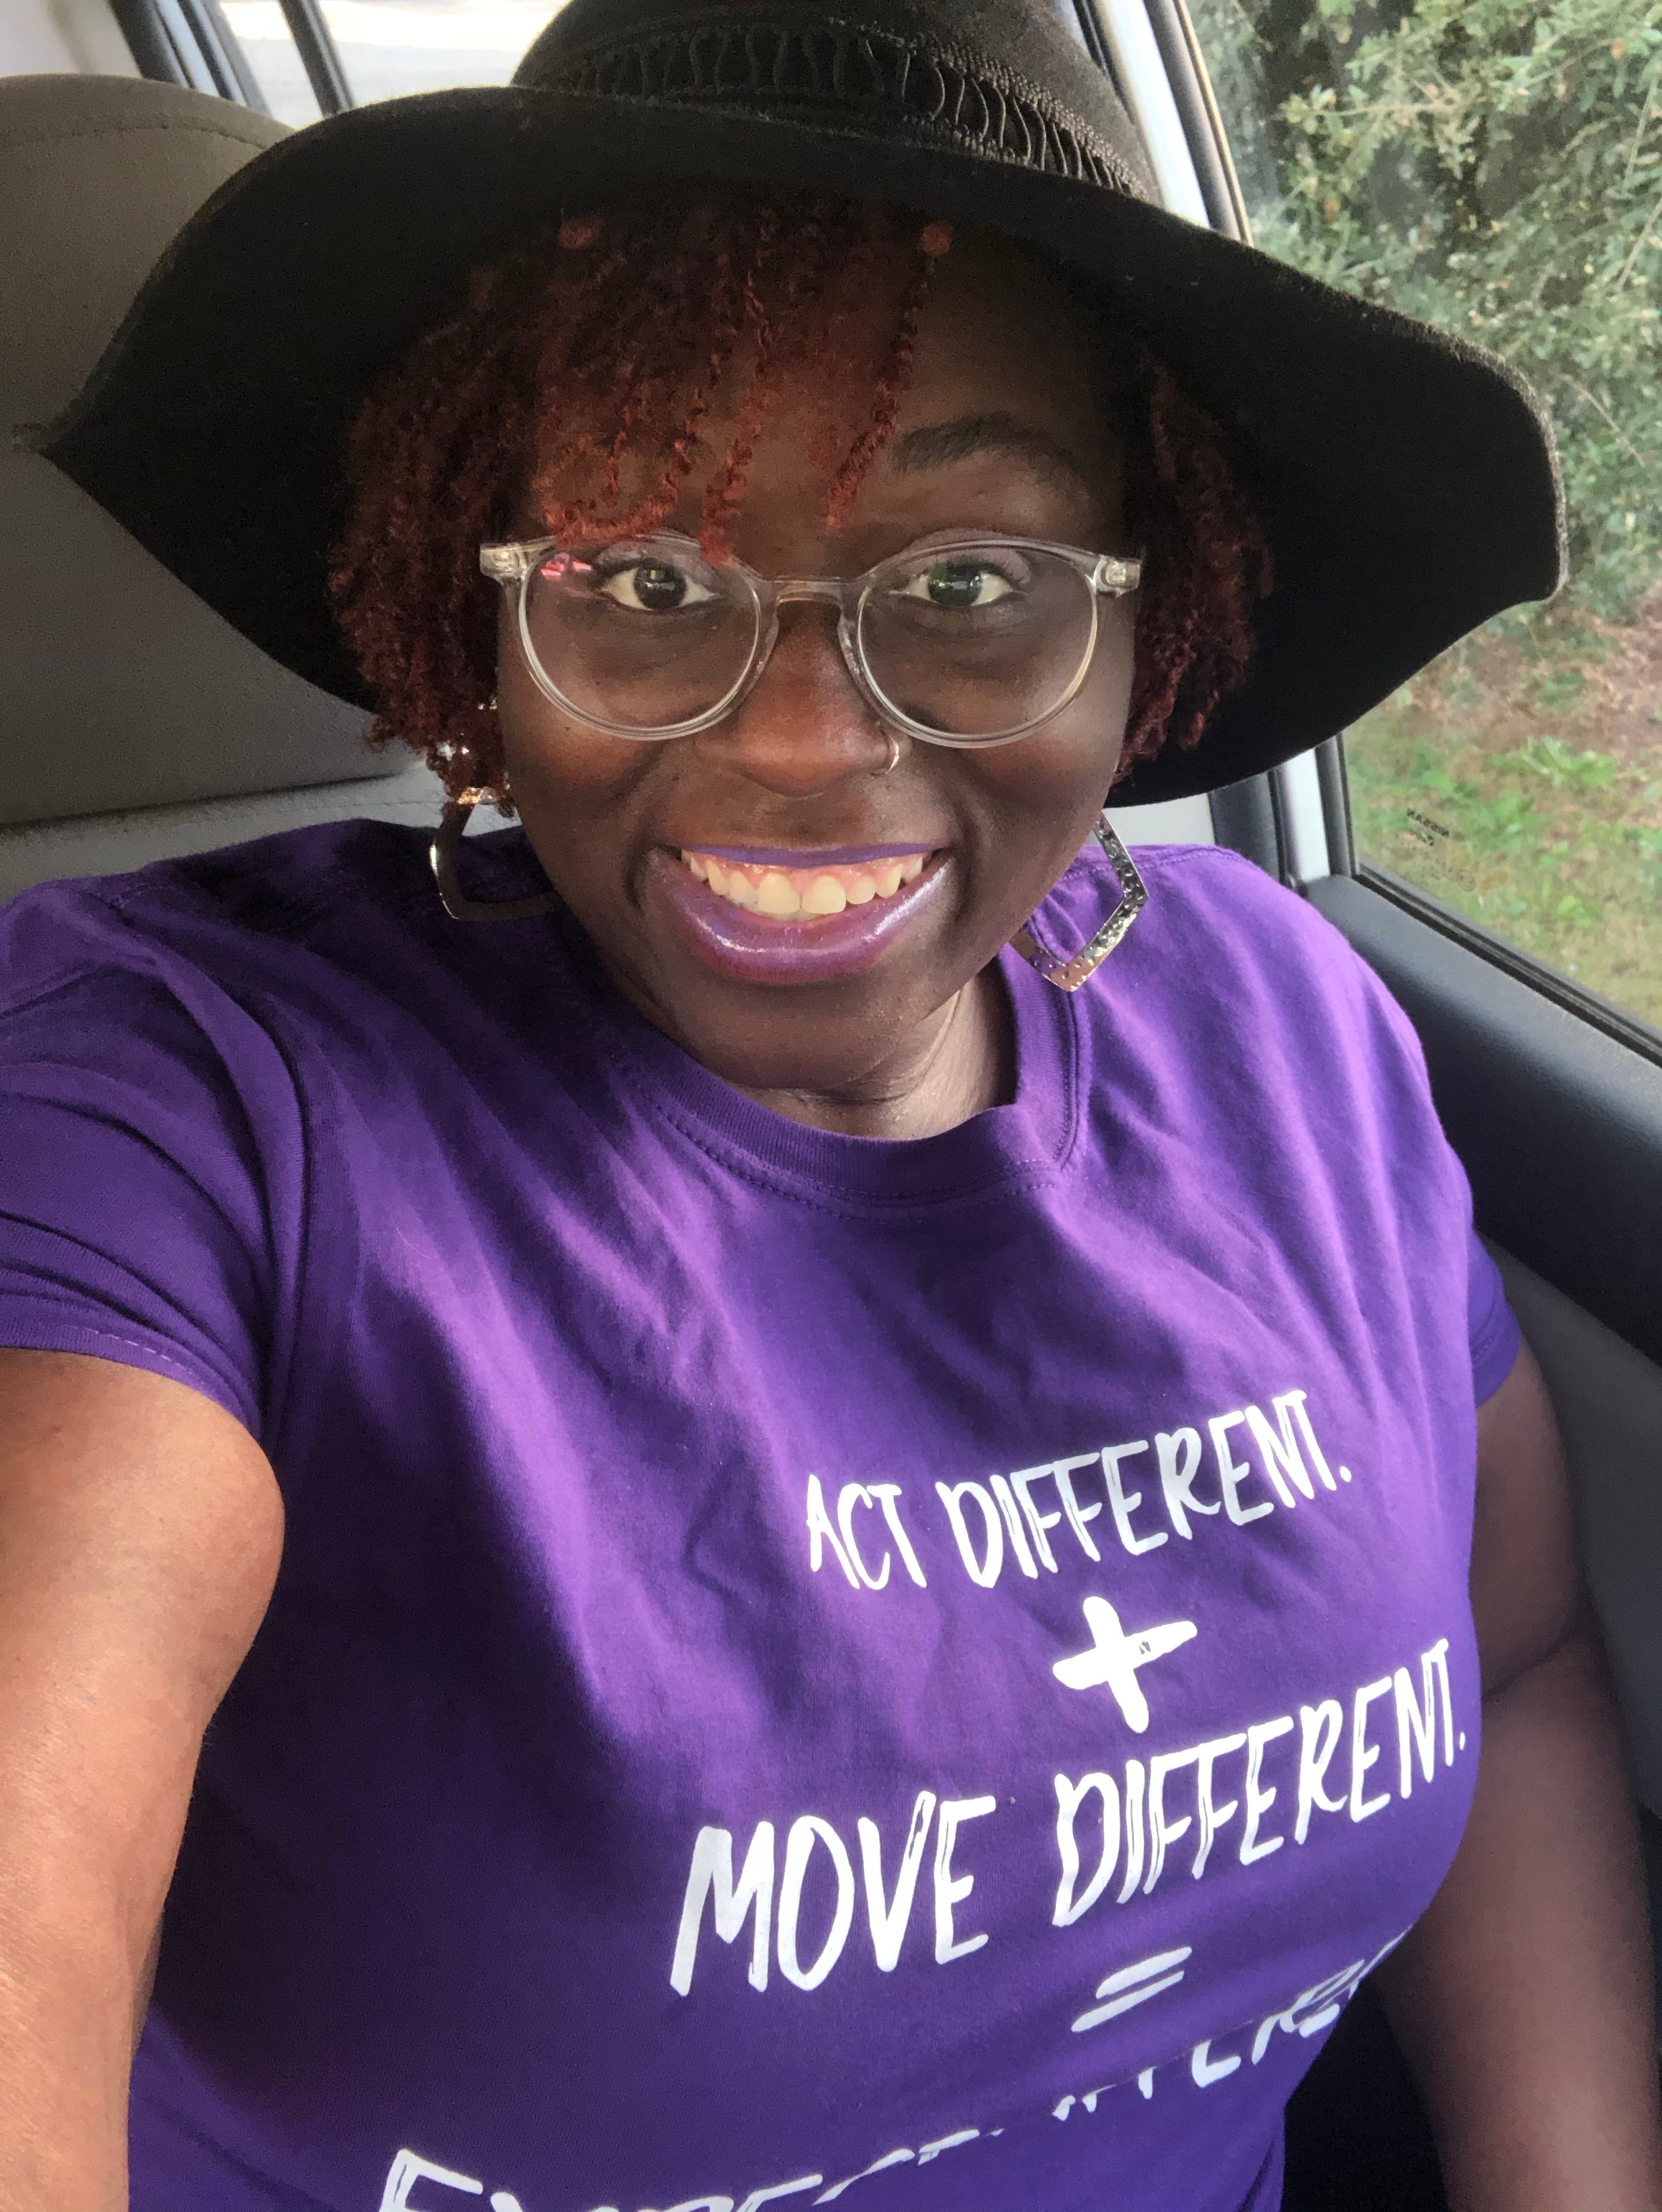 Act Different. + Move Different. = Expect Different. ™UNISEX Tee- Purple